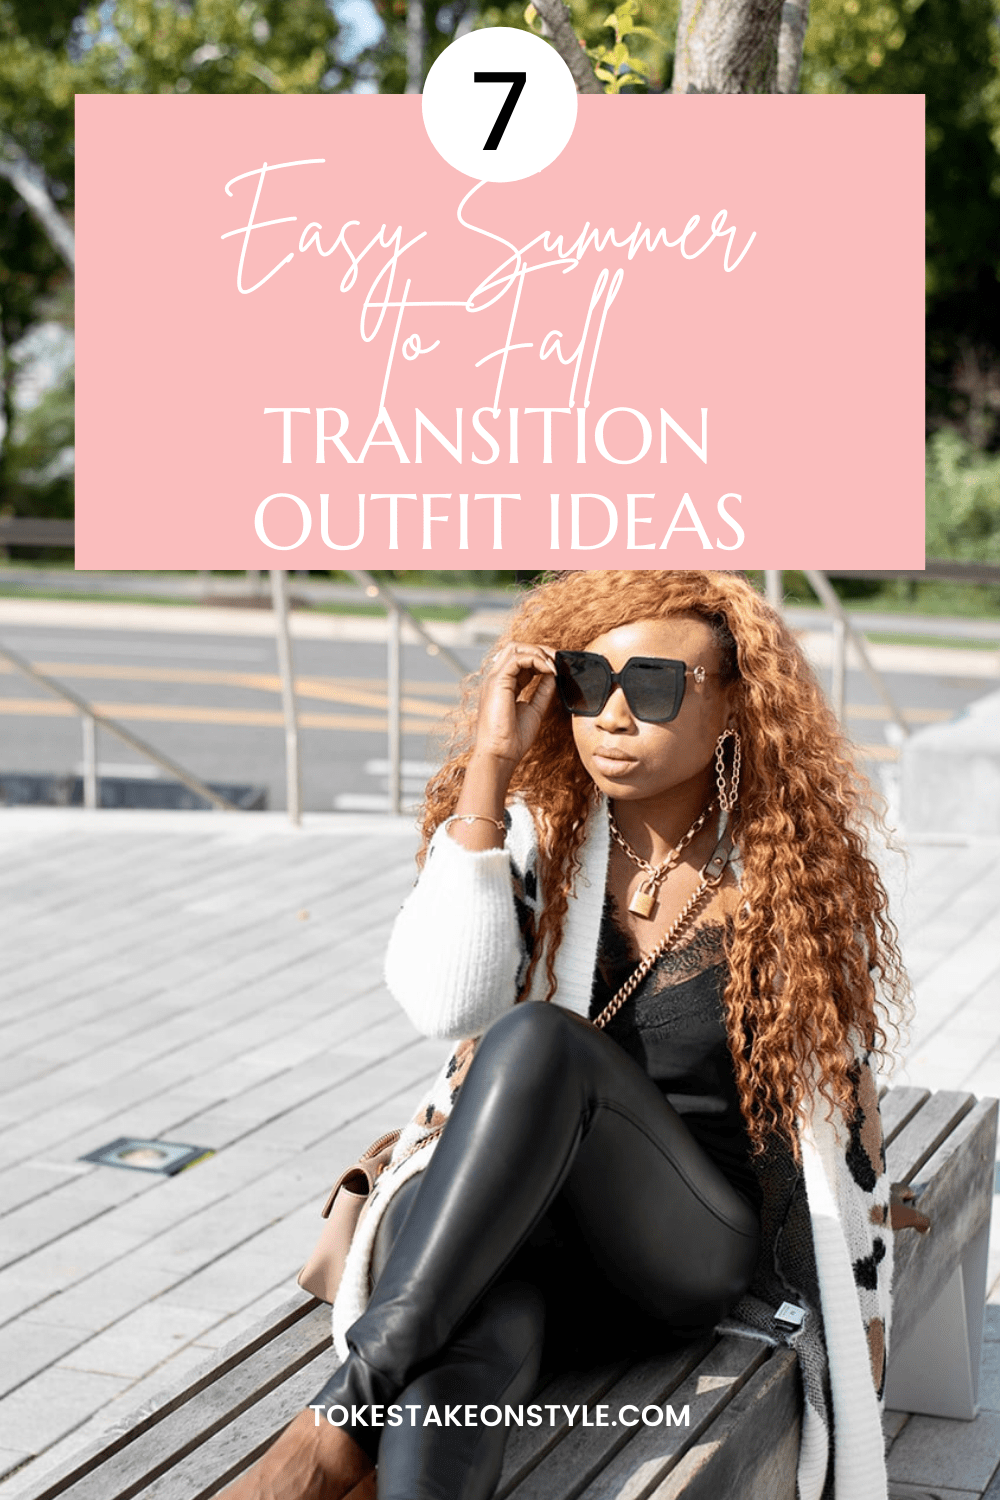 tokestakeonstyle-easy-summer-to-fall-transition-outfits